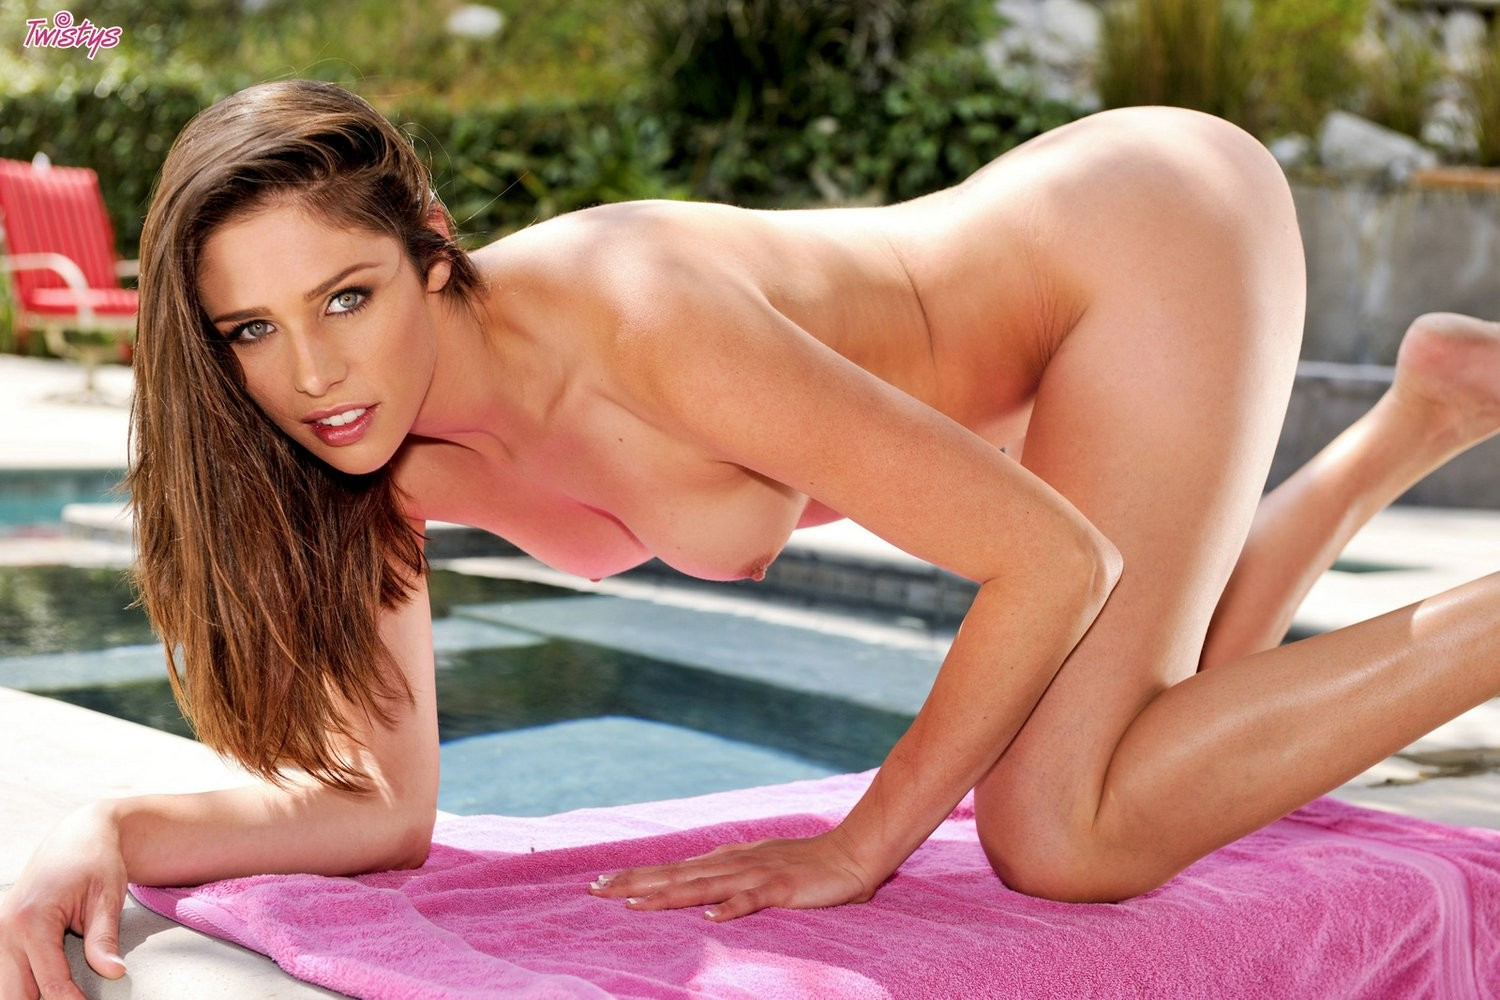 Anastasia morna bangs her aroused love button with her fingers